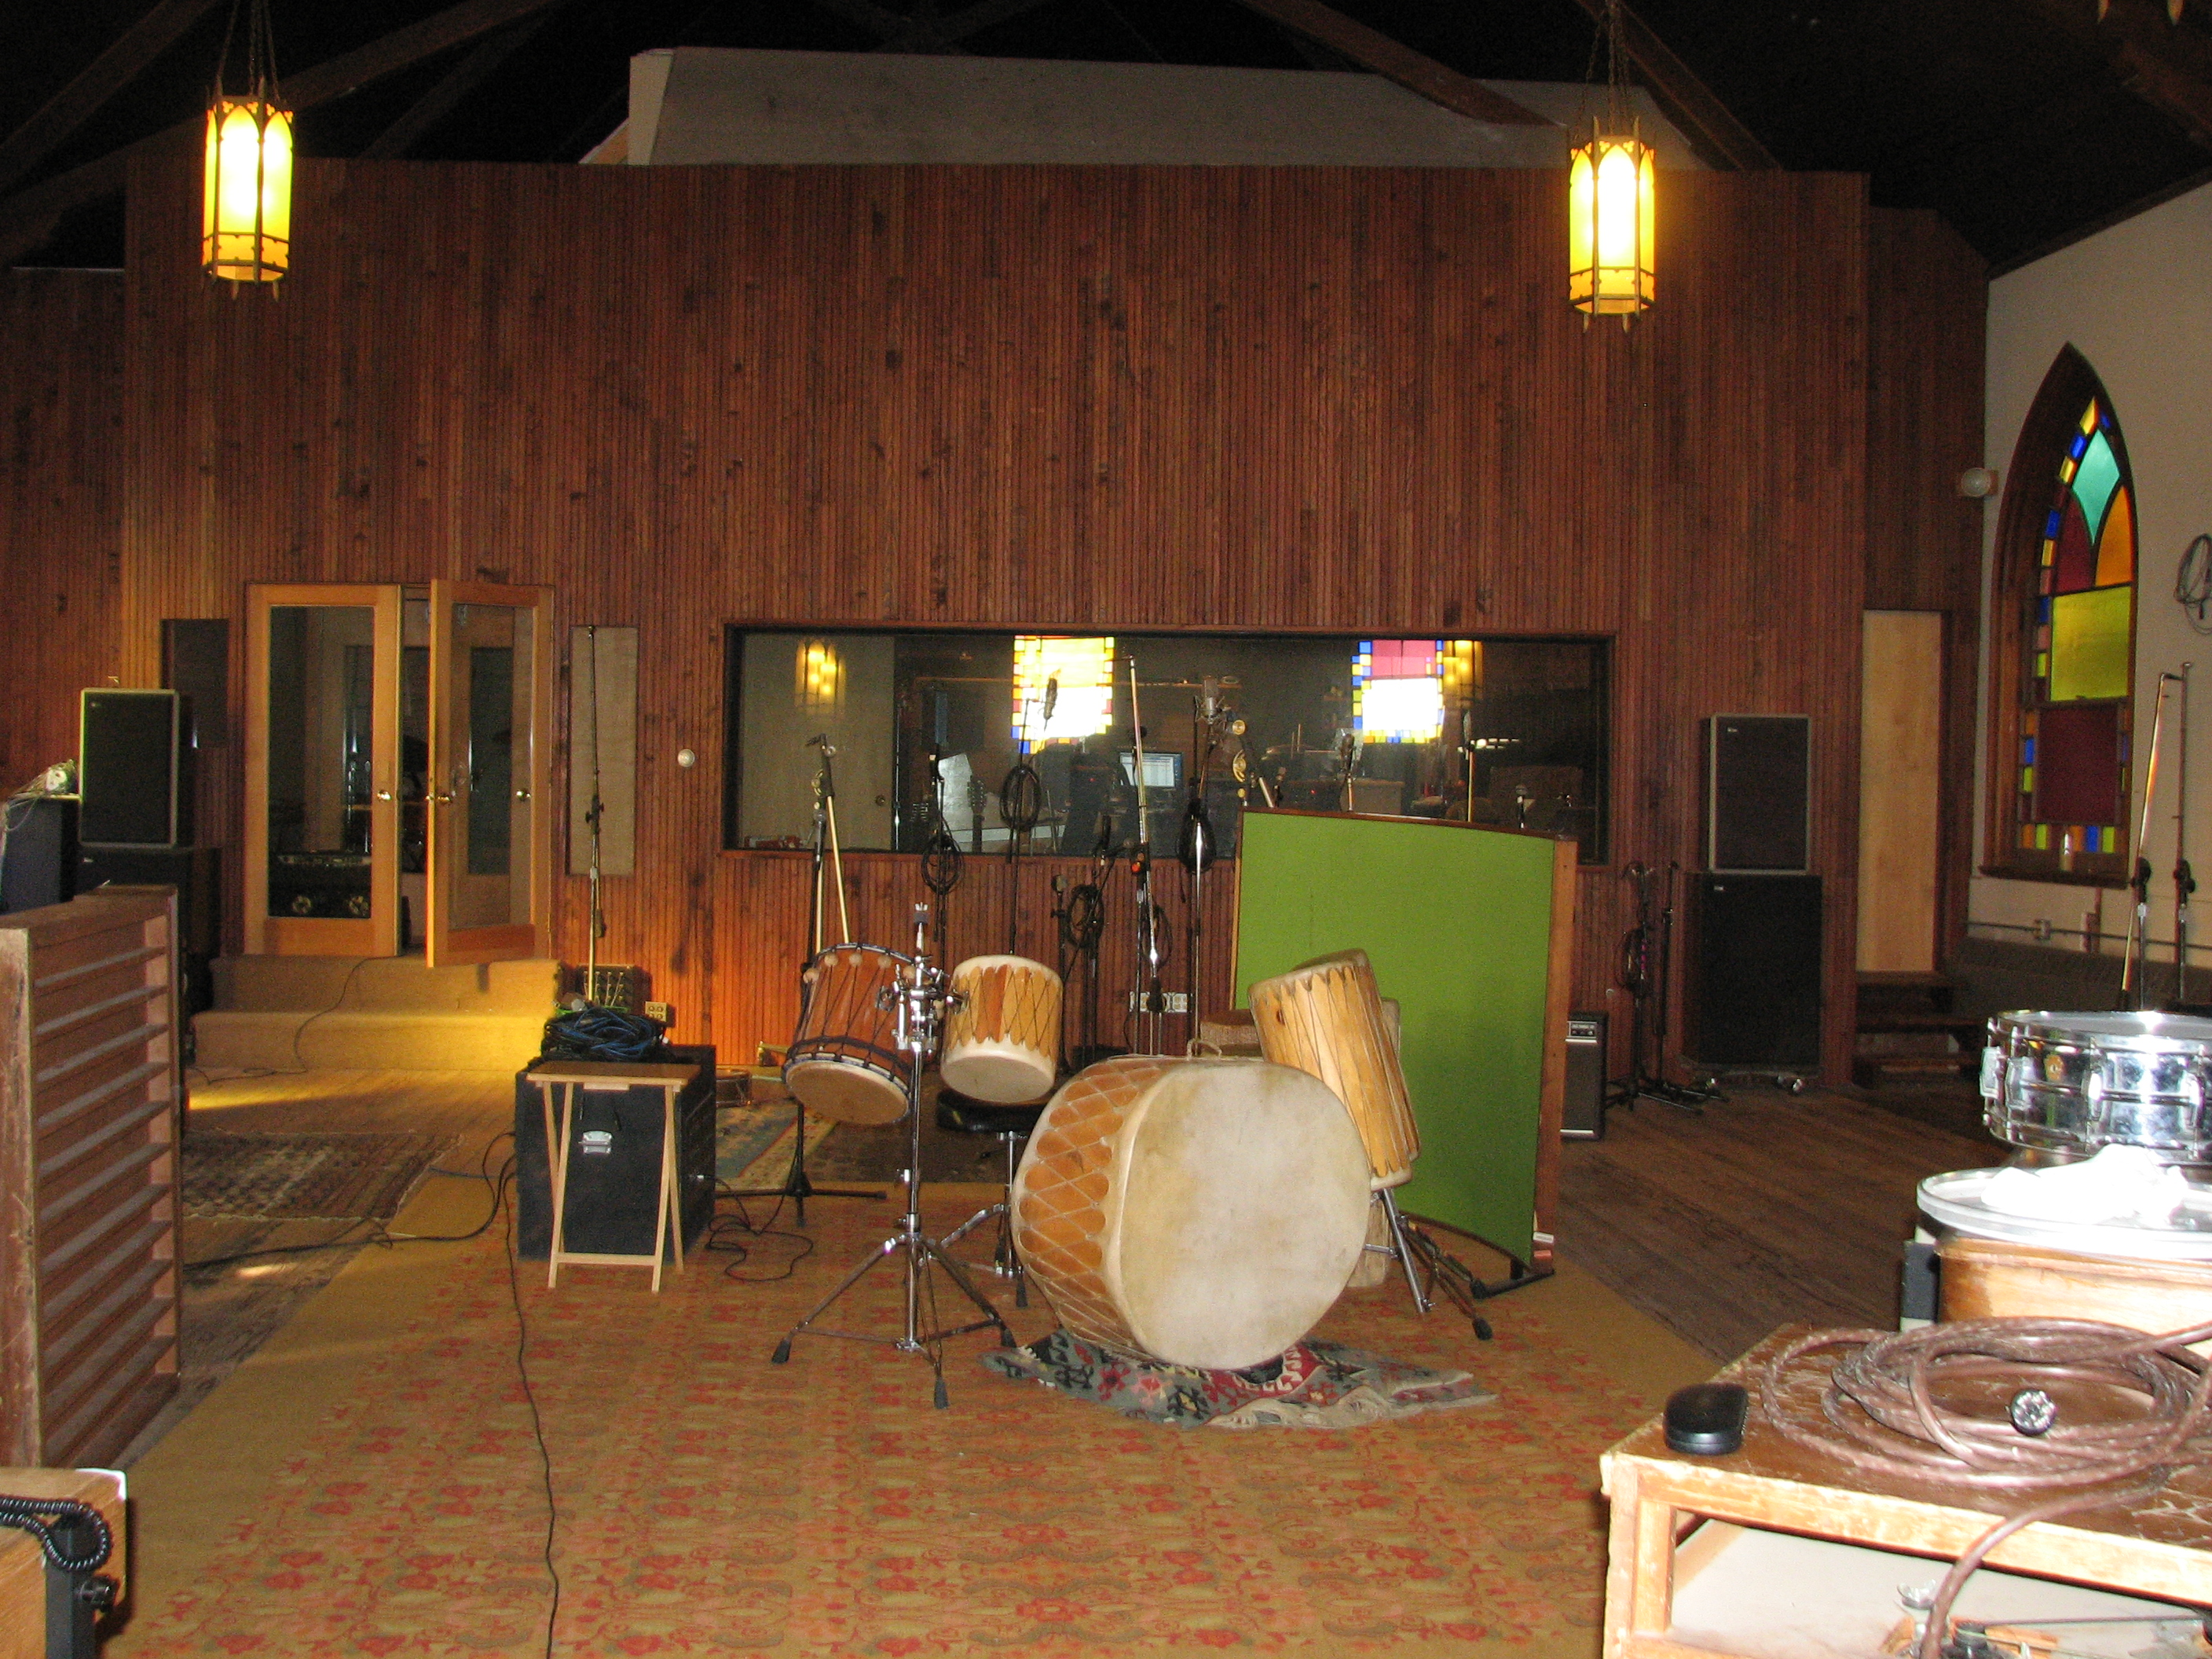 Dreamland Studio